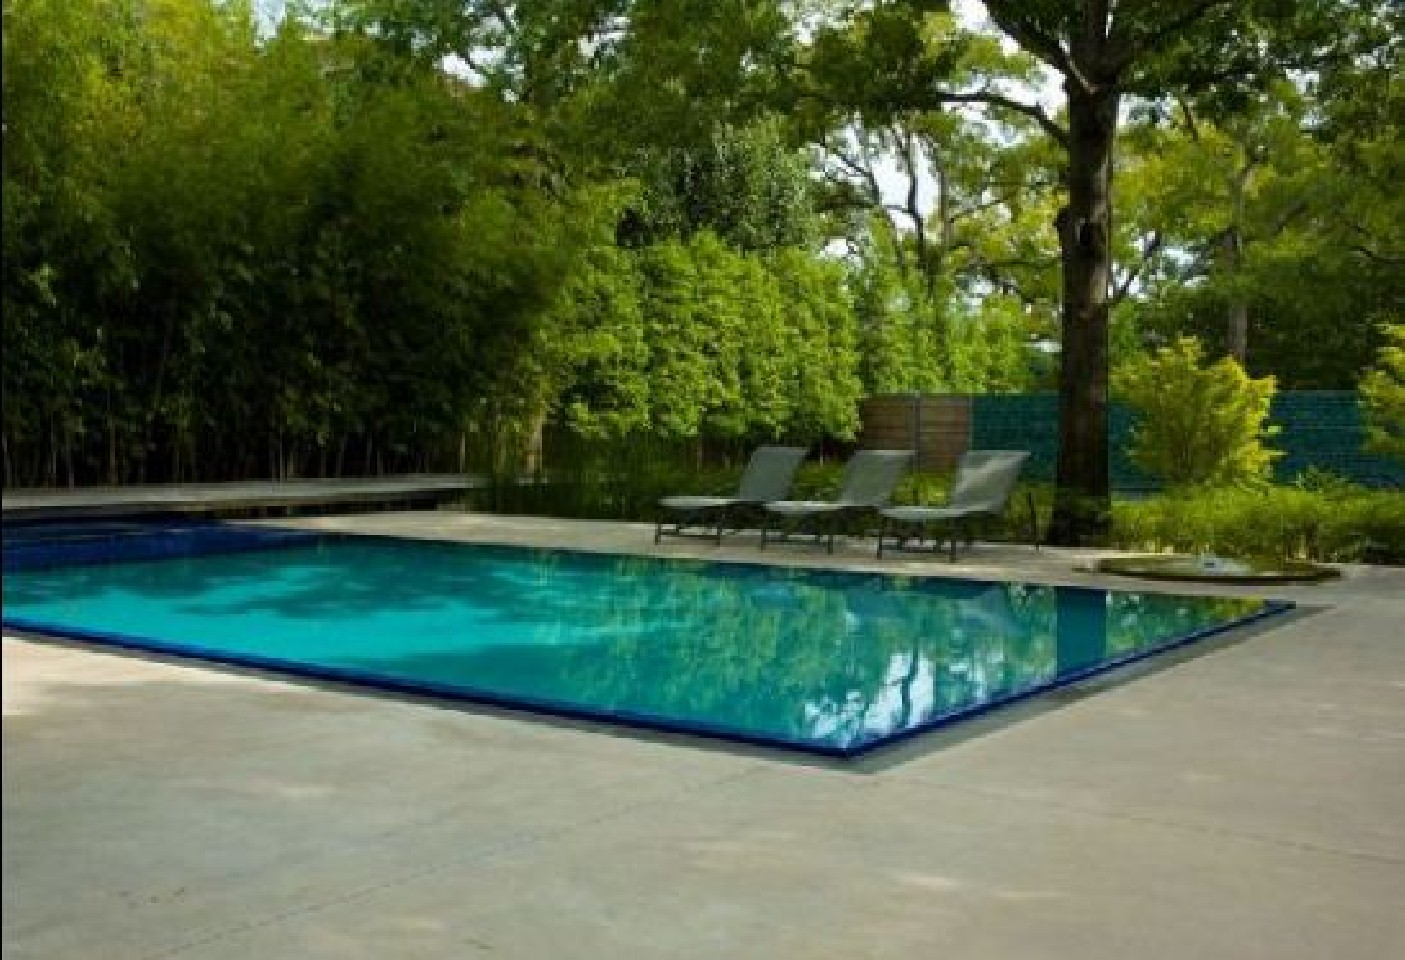 Home garden design ideas wallpapers pictures fashion for The garden pool